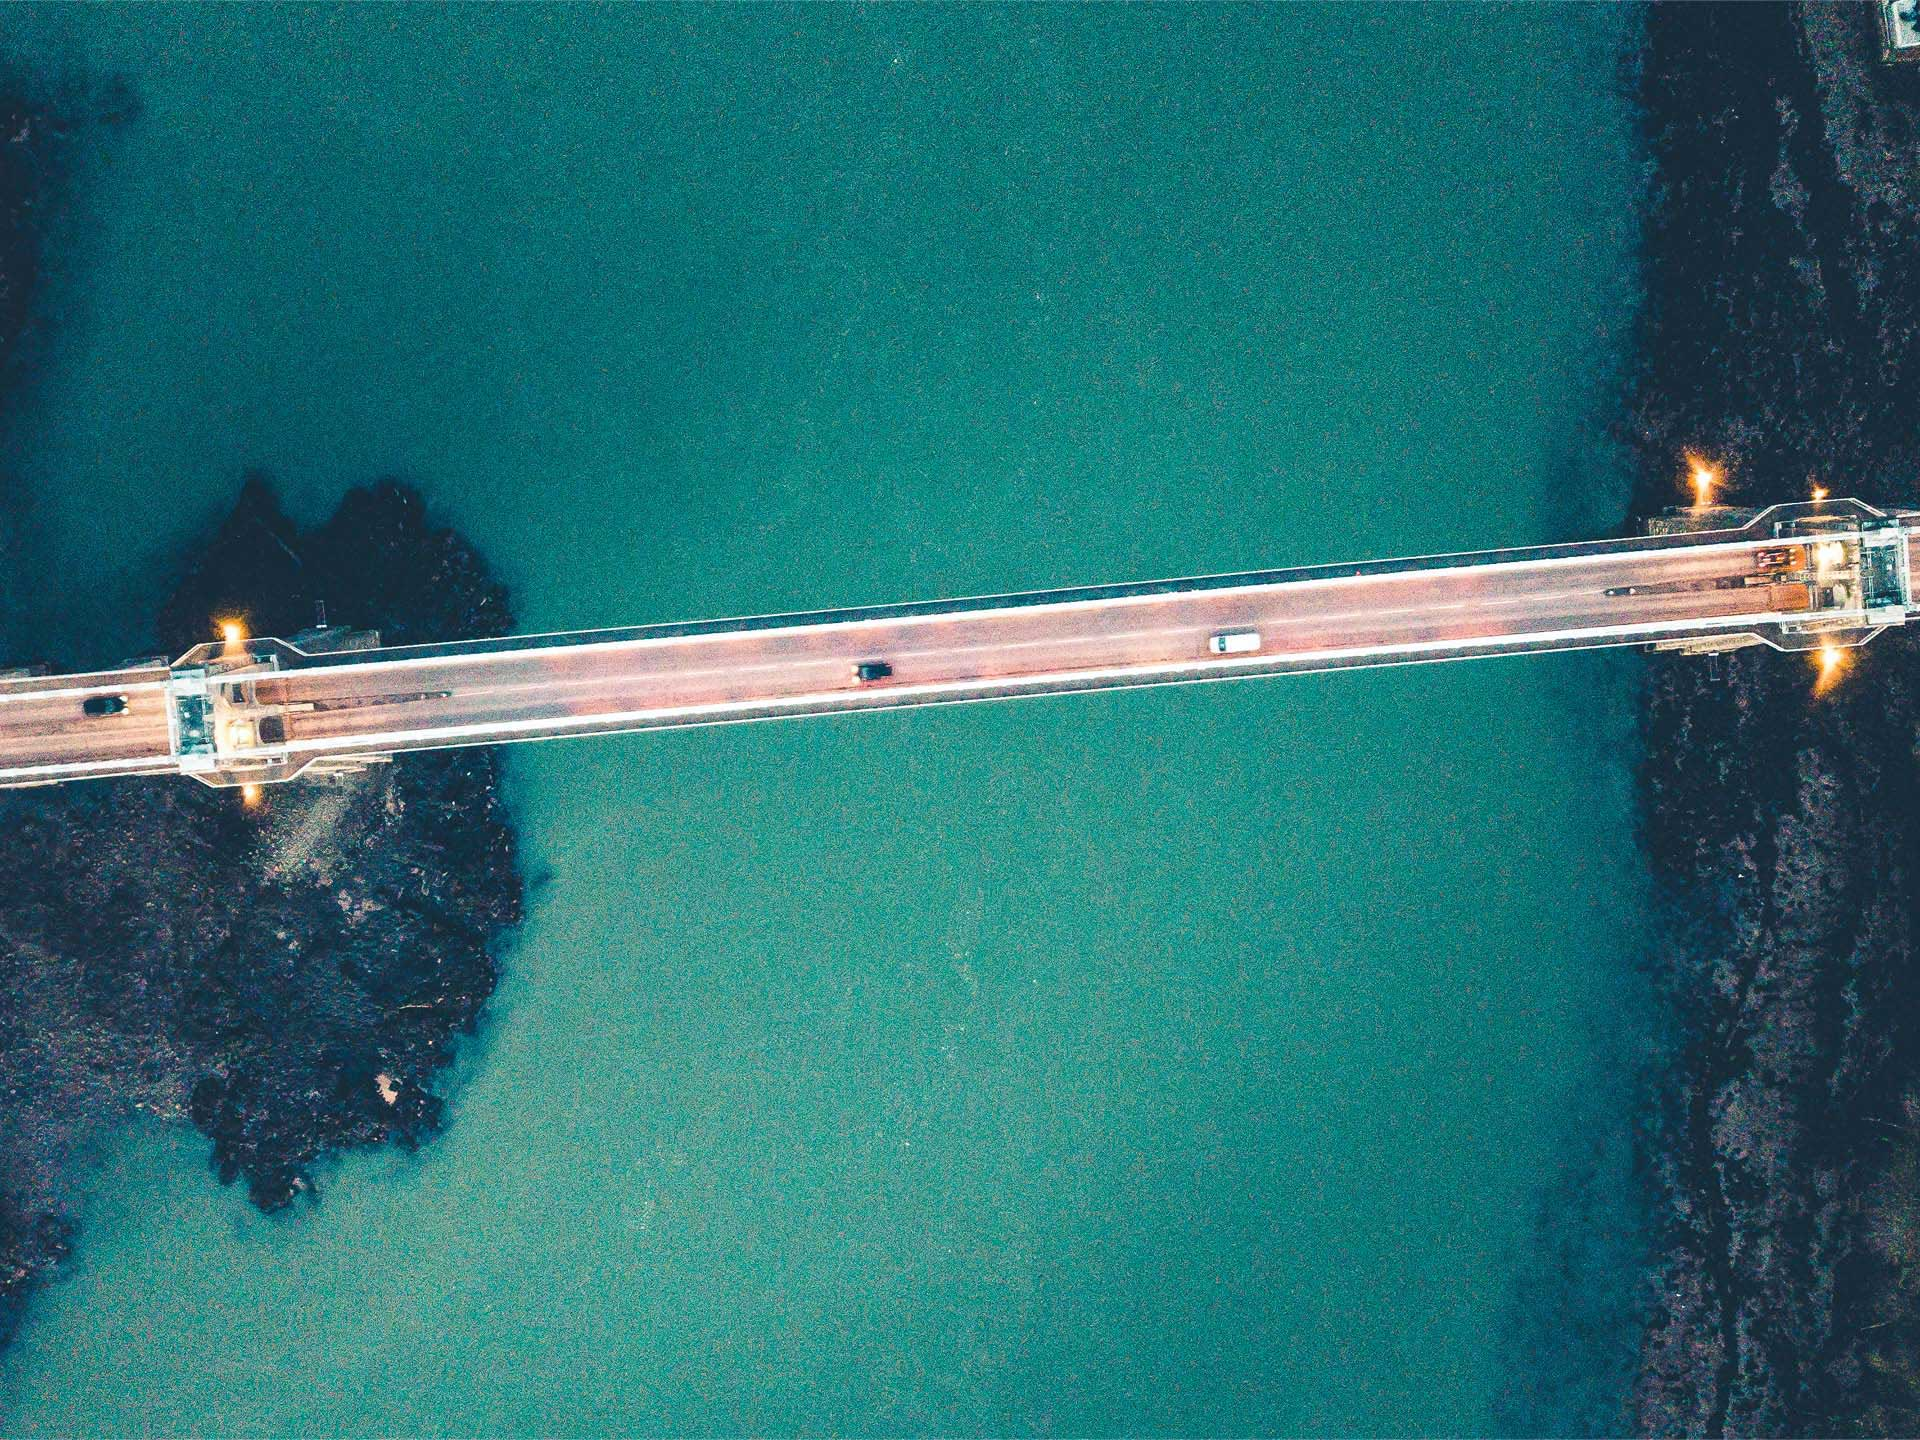 Drrone captured shot of Menai Bridge from above as cars cross over.